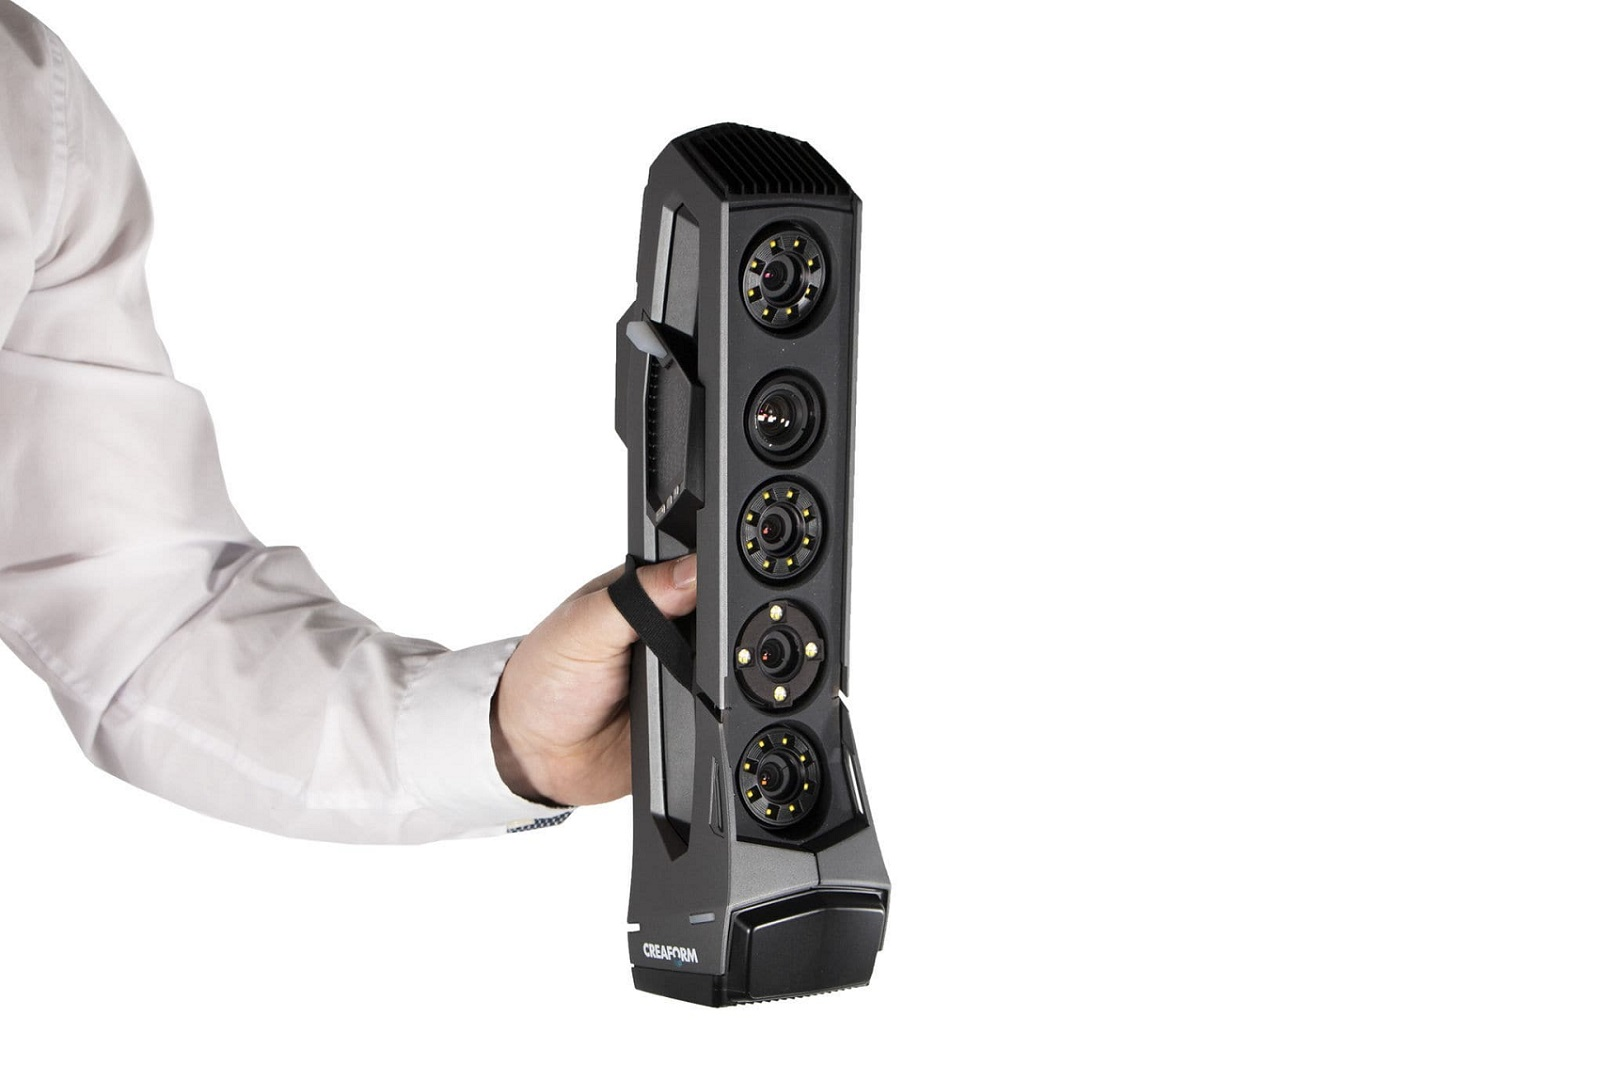 Portable Handheld 3D Scanners